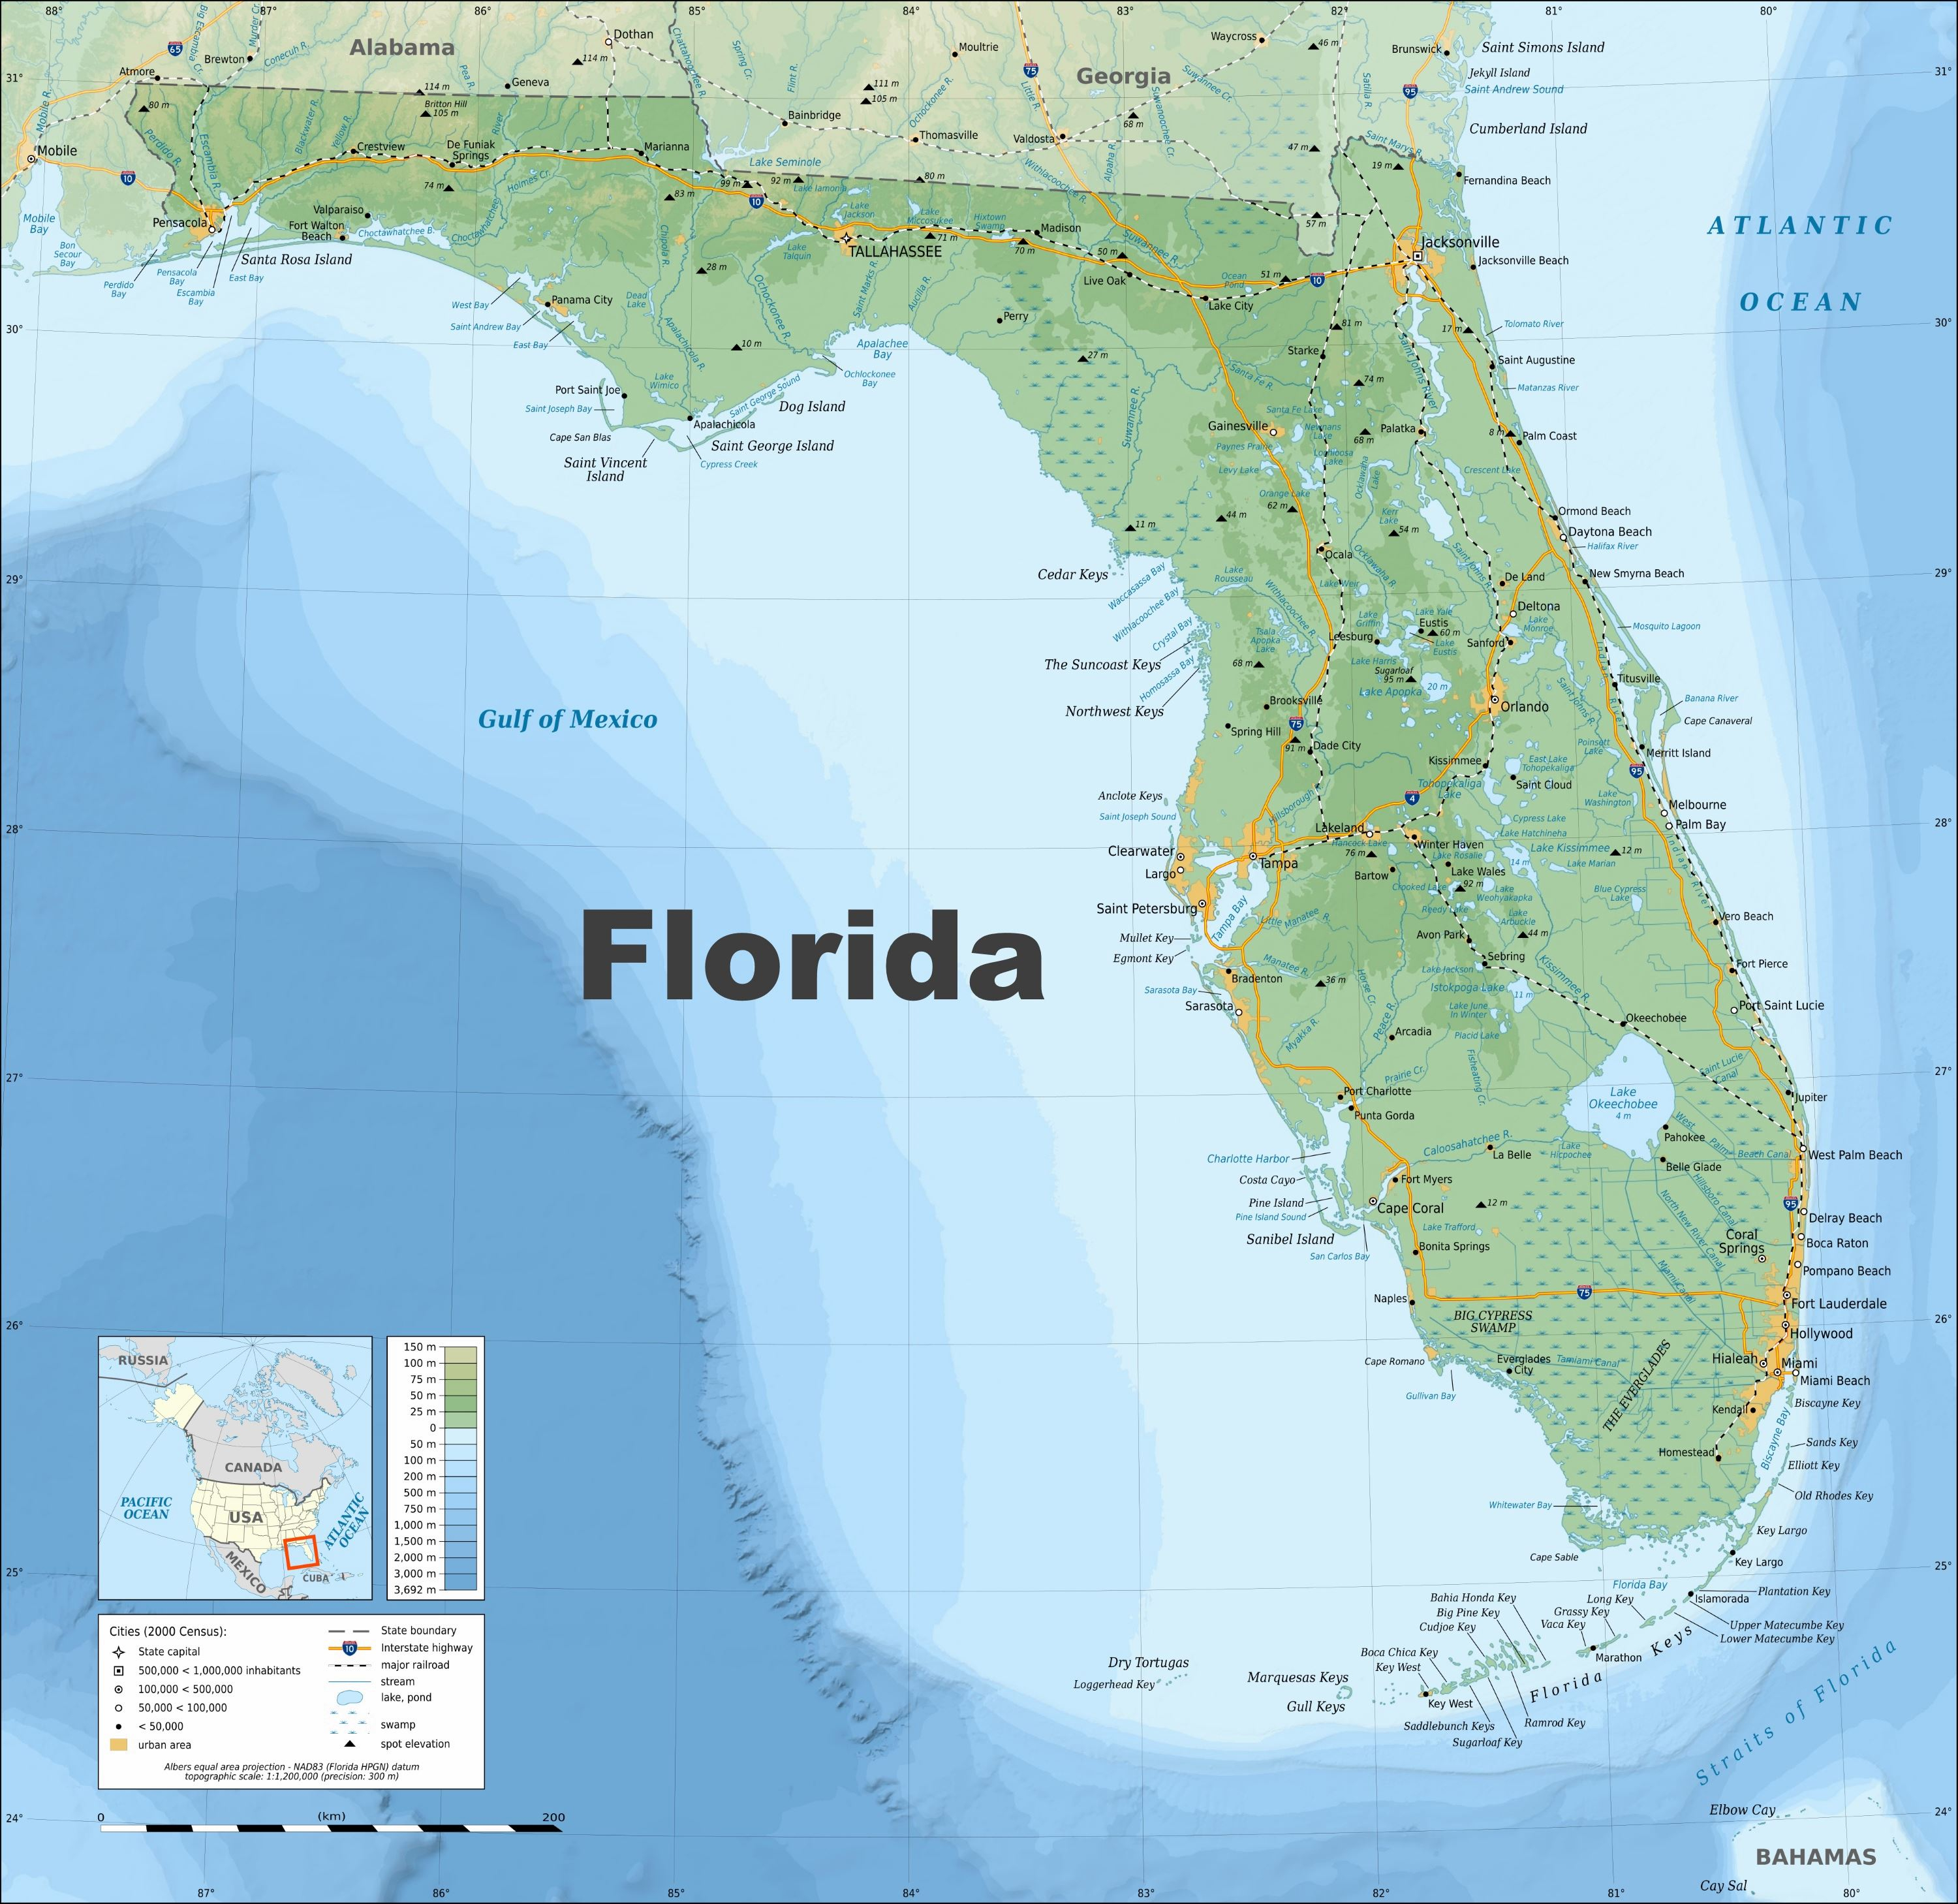 Large Florida Maps For Free Download And Print | High-Resolution And - Road Map Of Central Florida